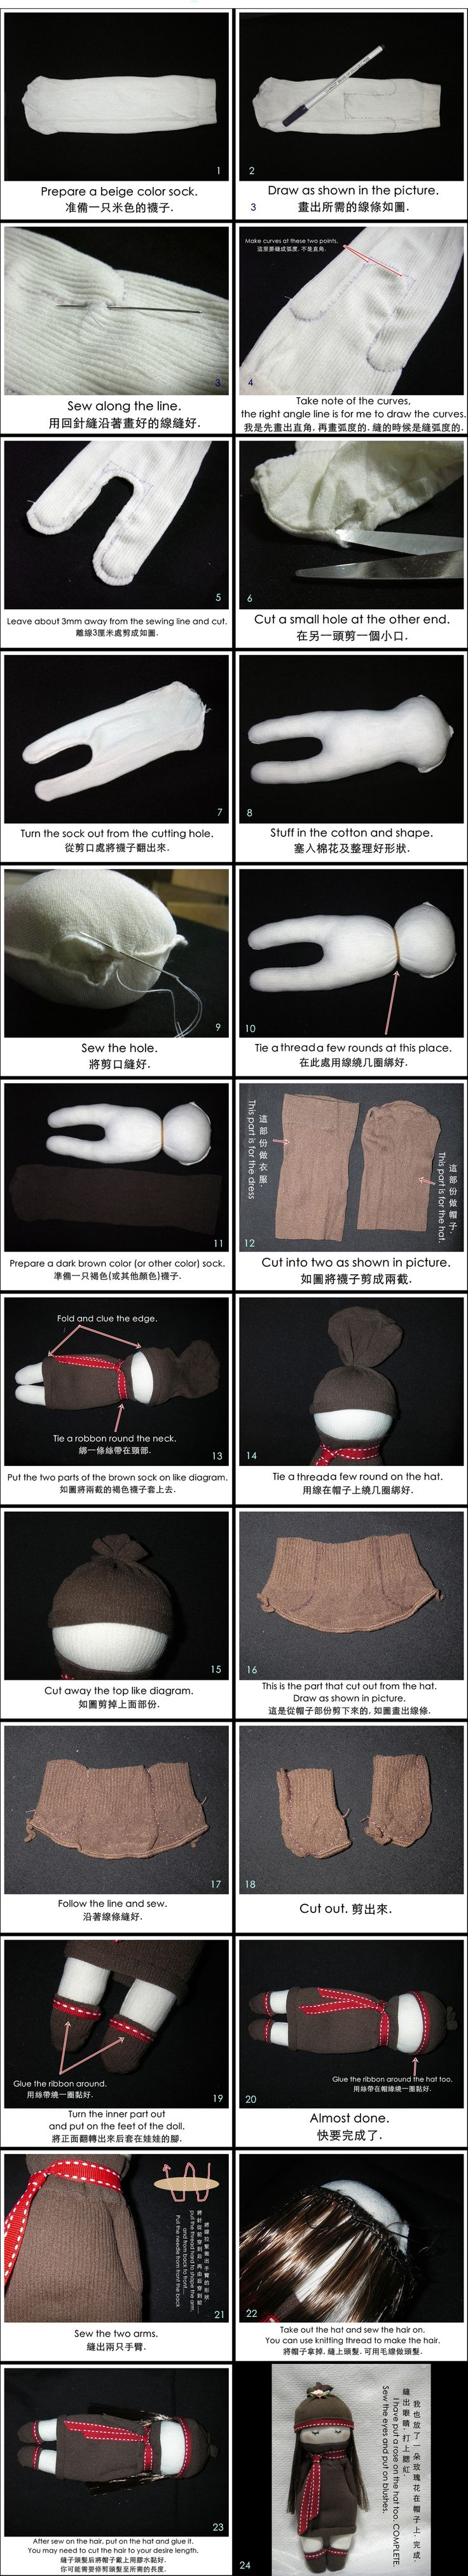 Cute Sock Doll instructions